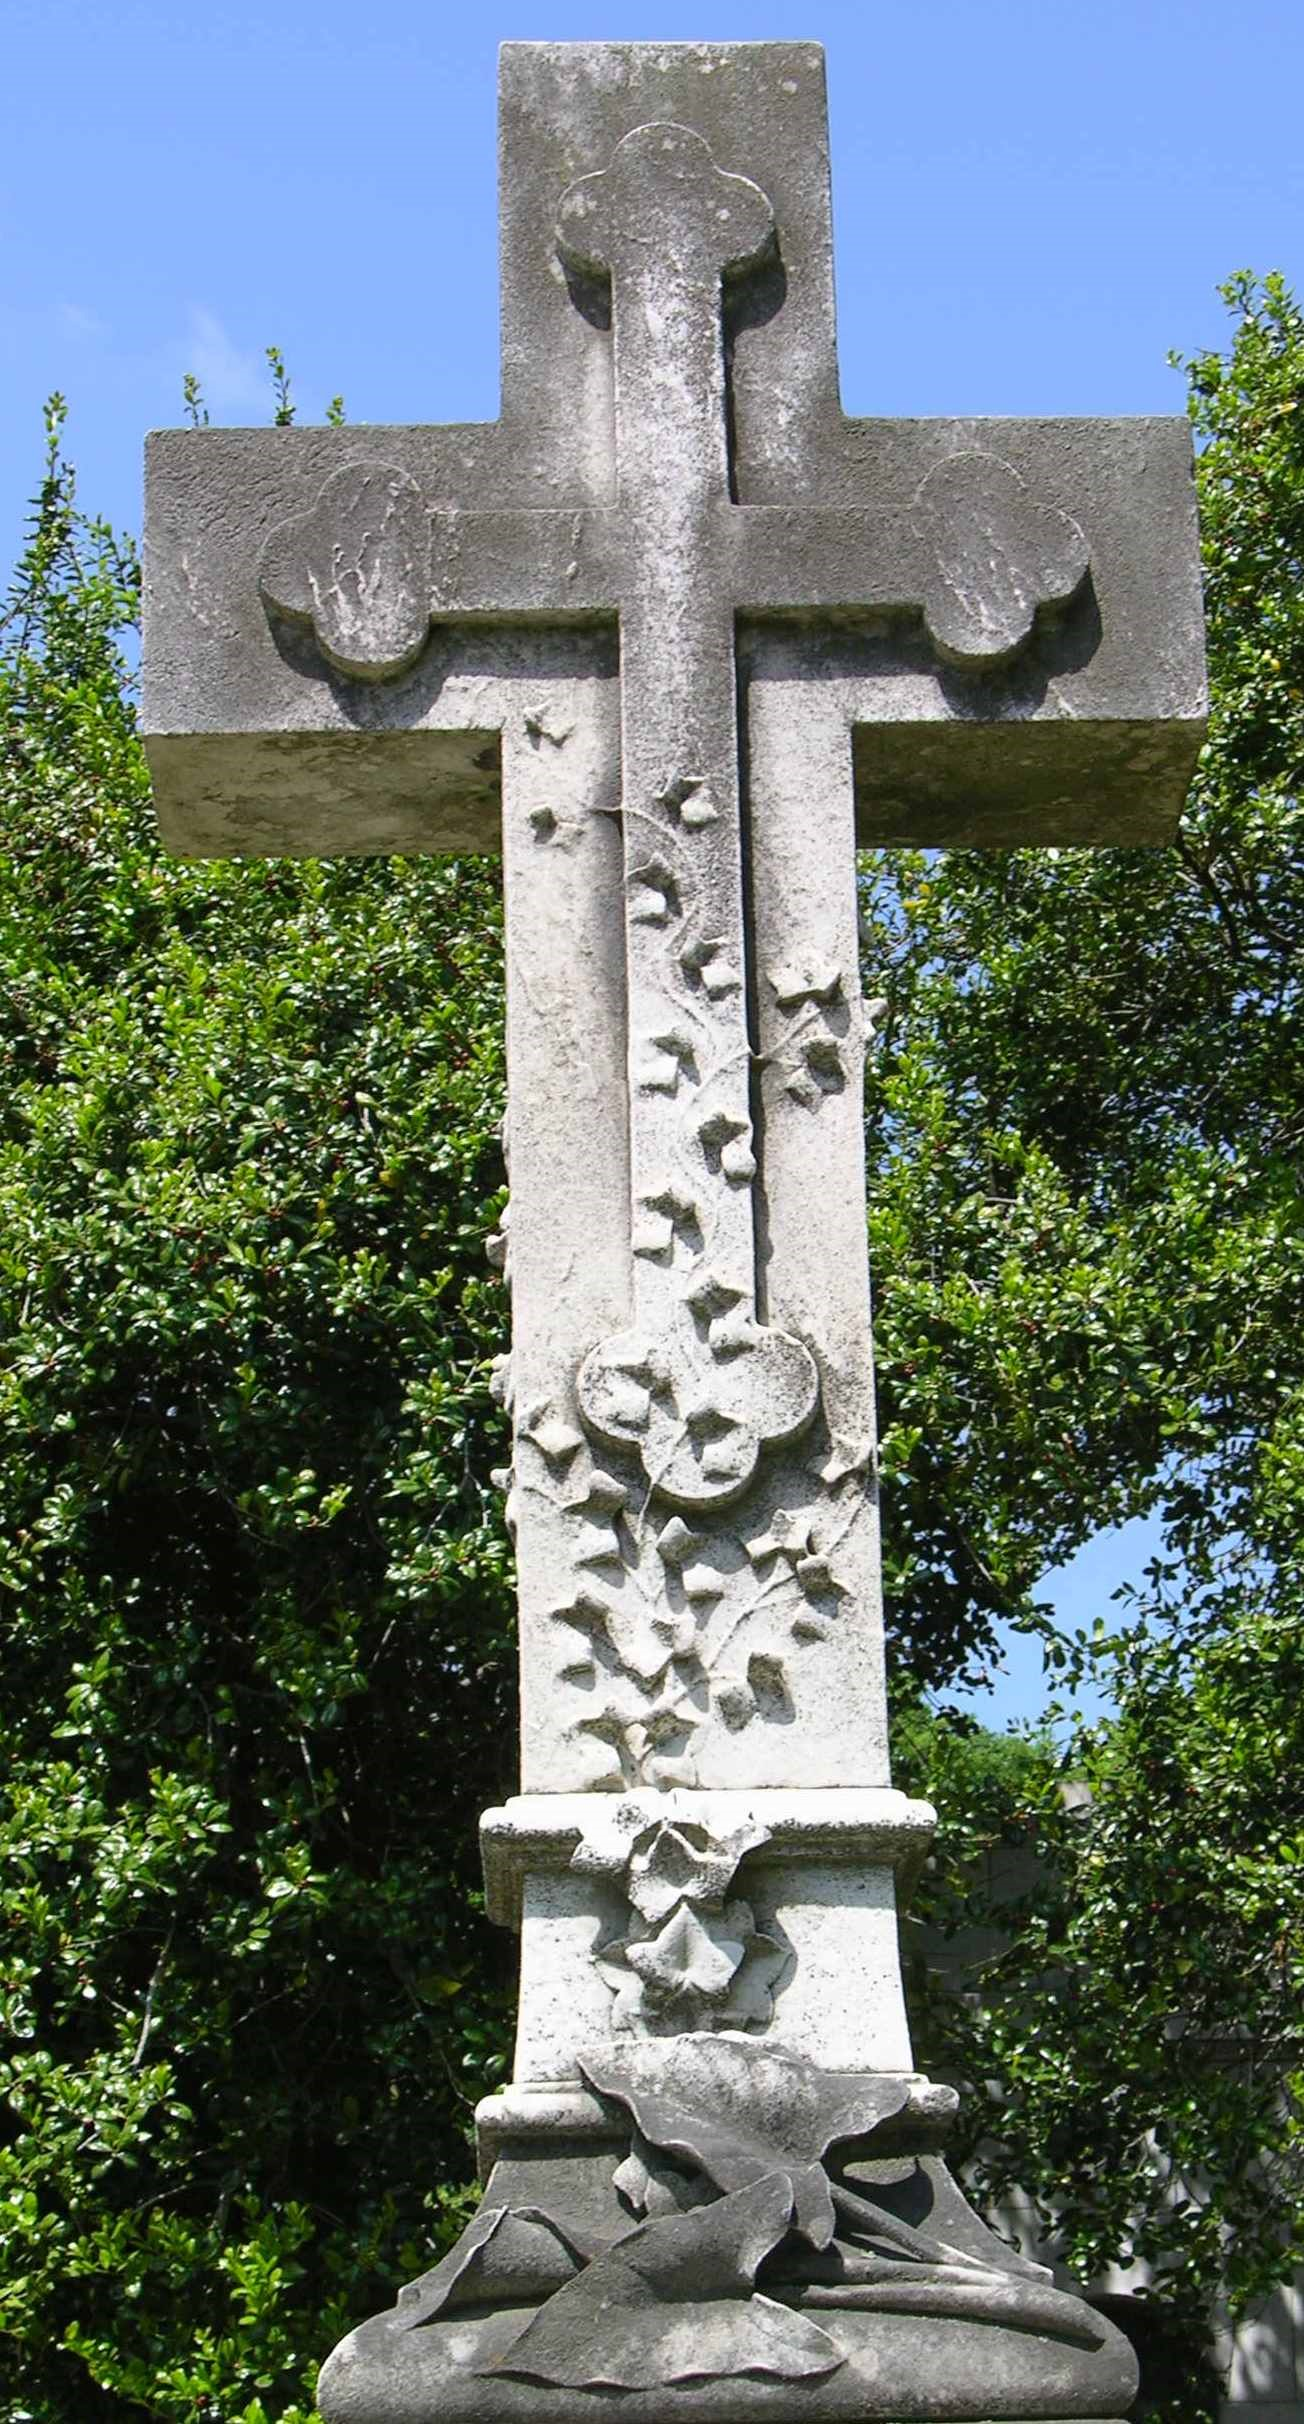 A marble cross monument with vines and leaves carved wrapping up from the base.